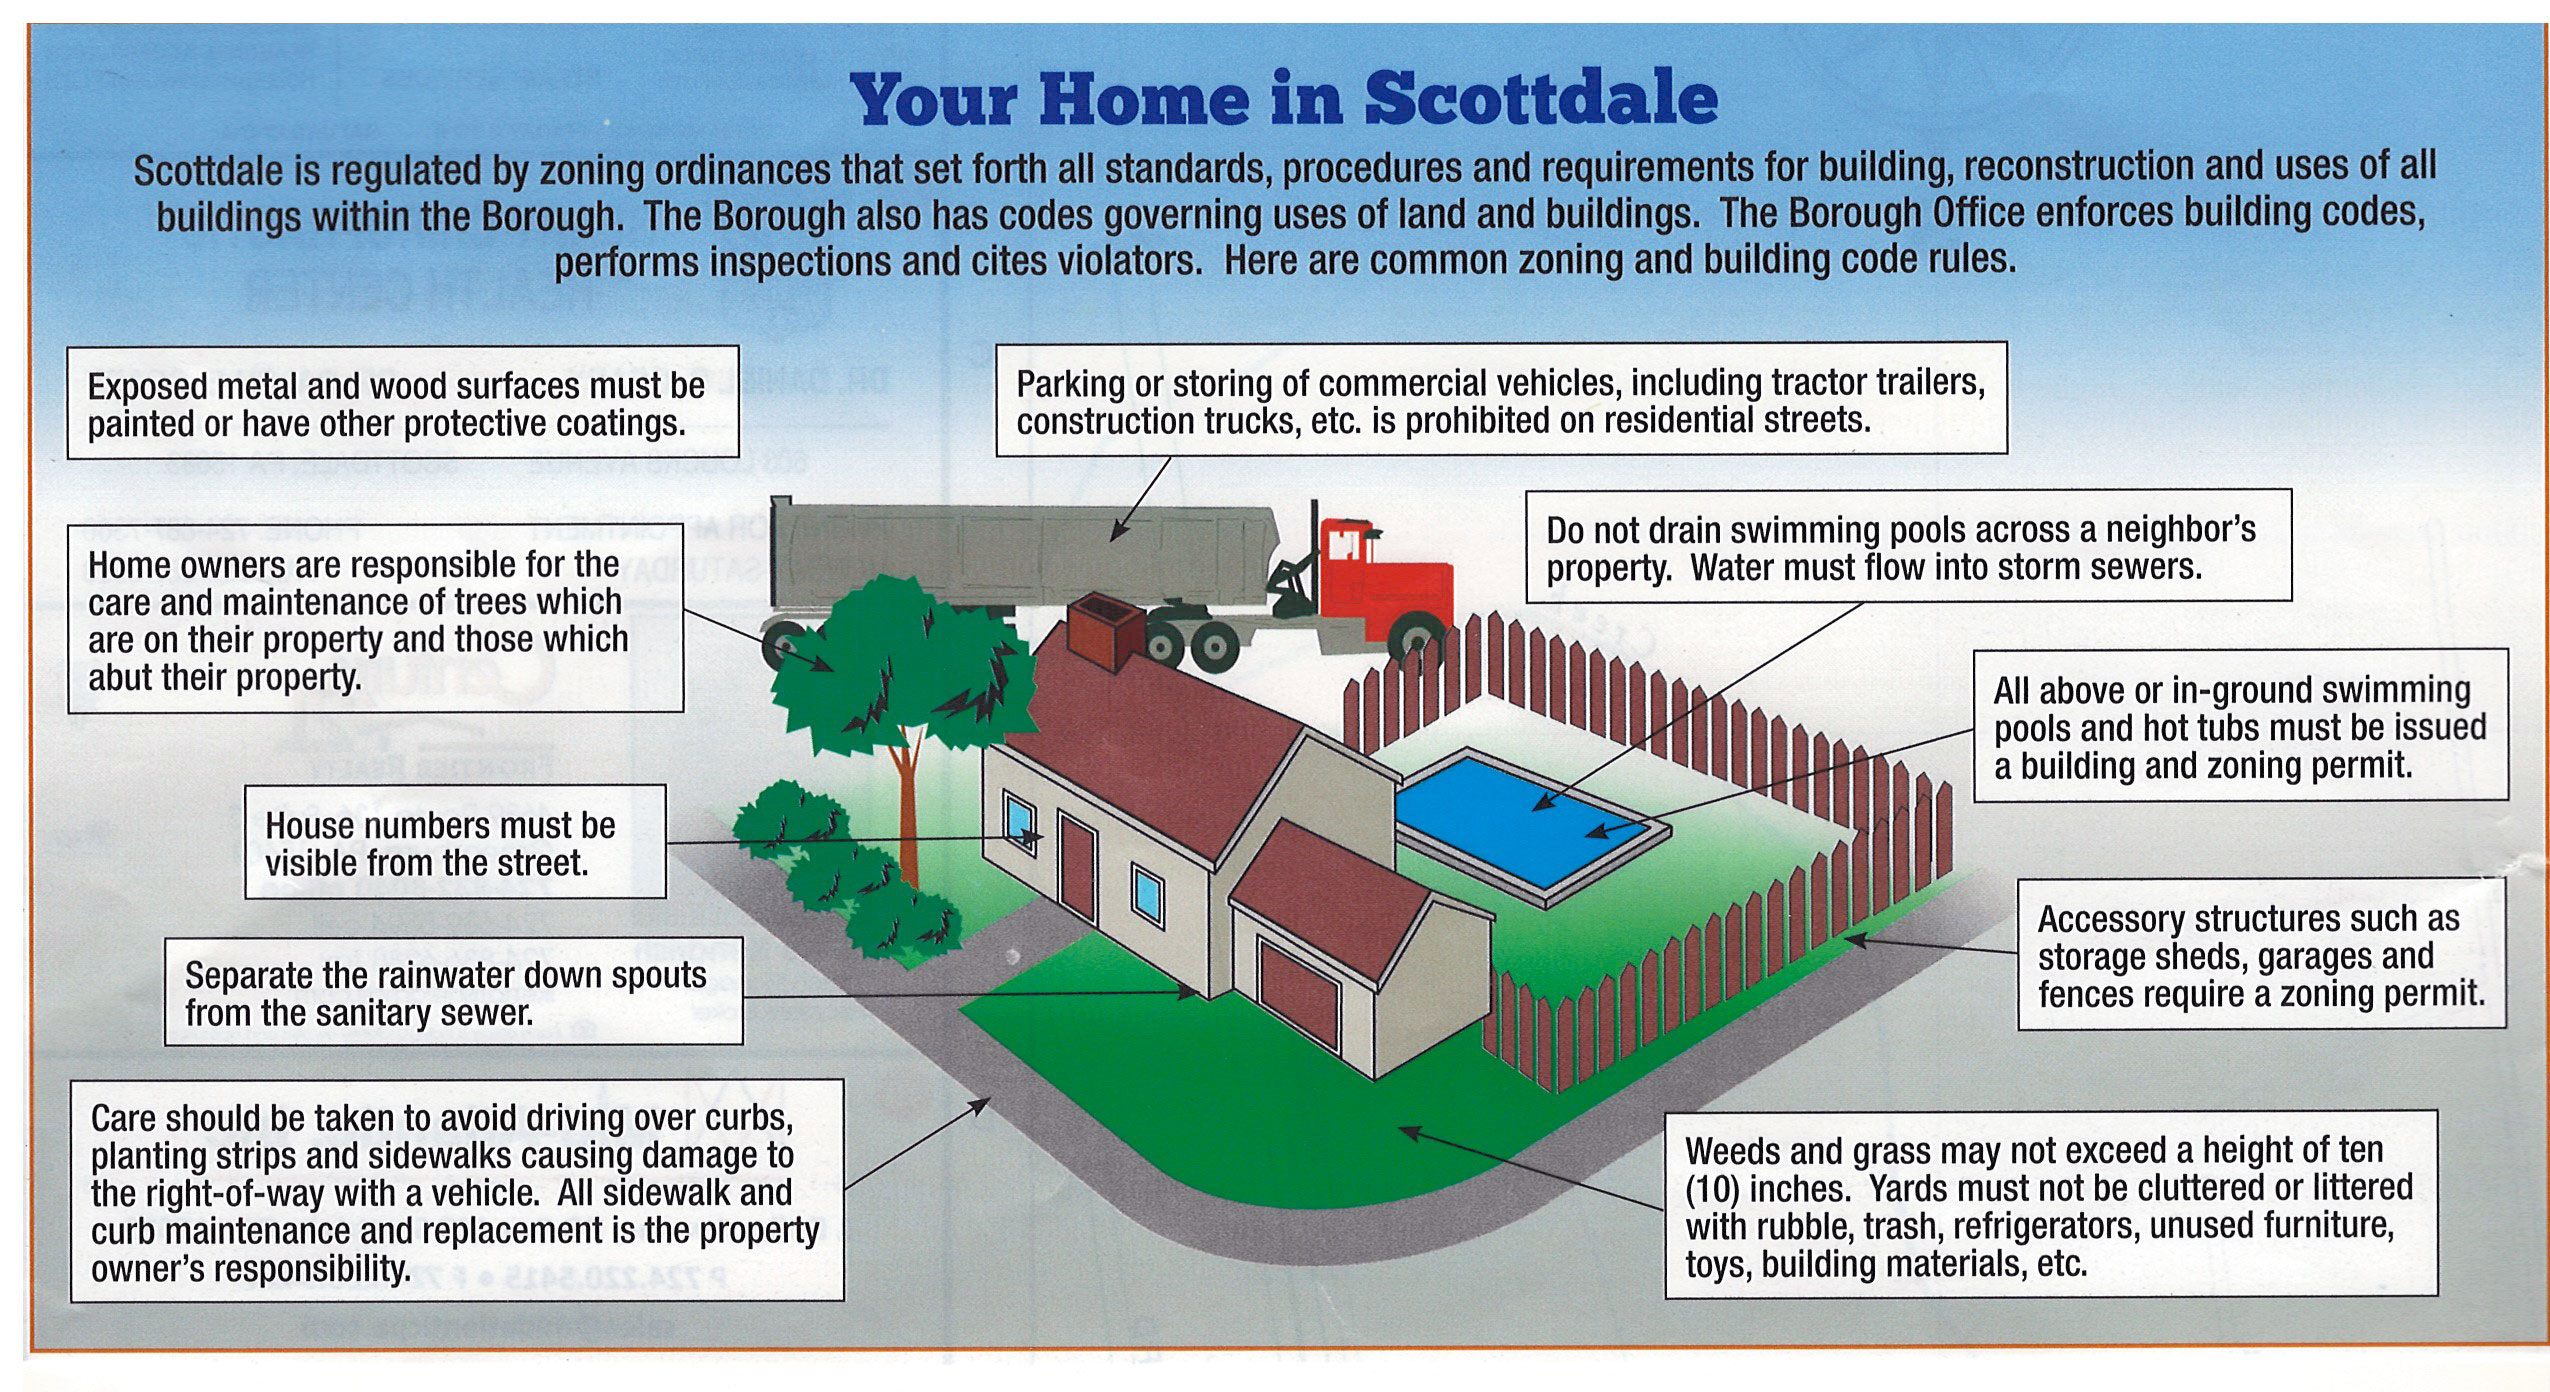 Your Home in Scottdale